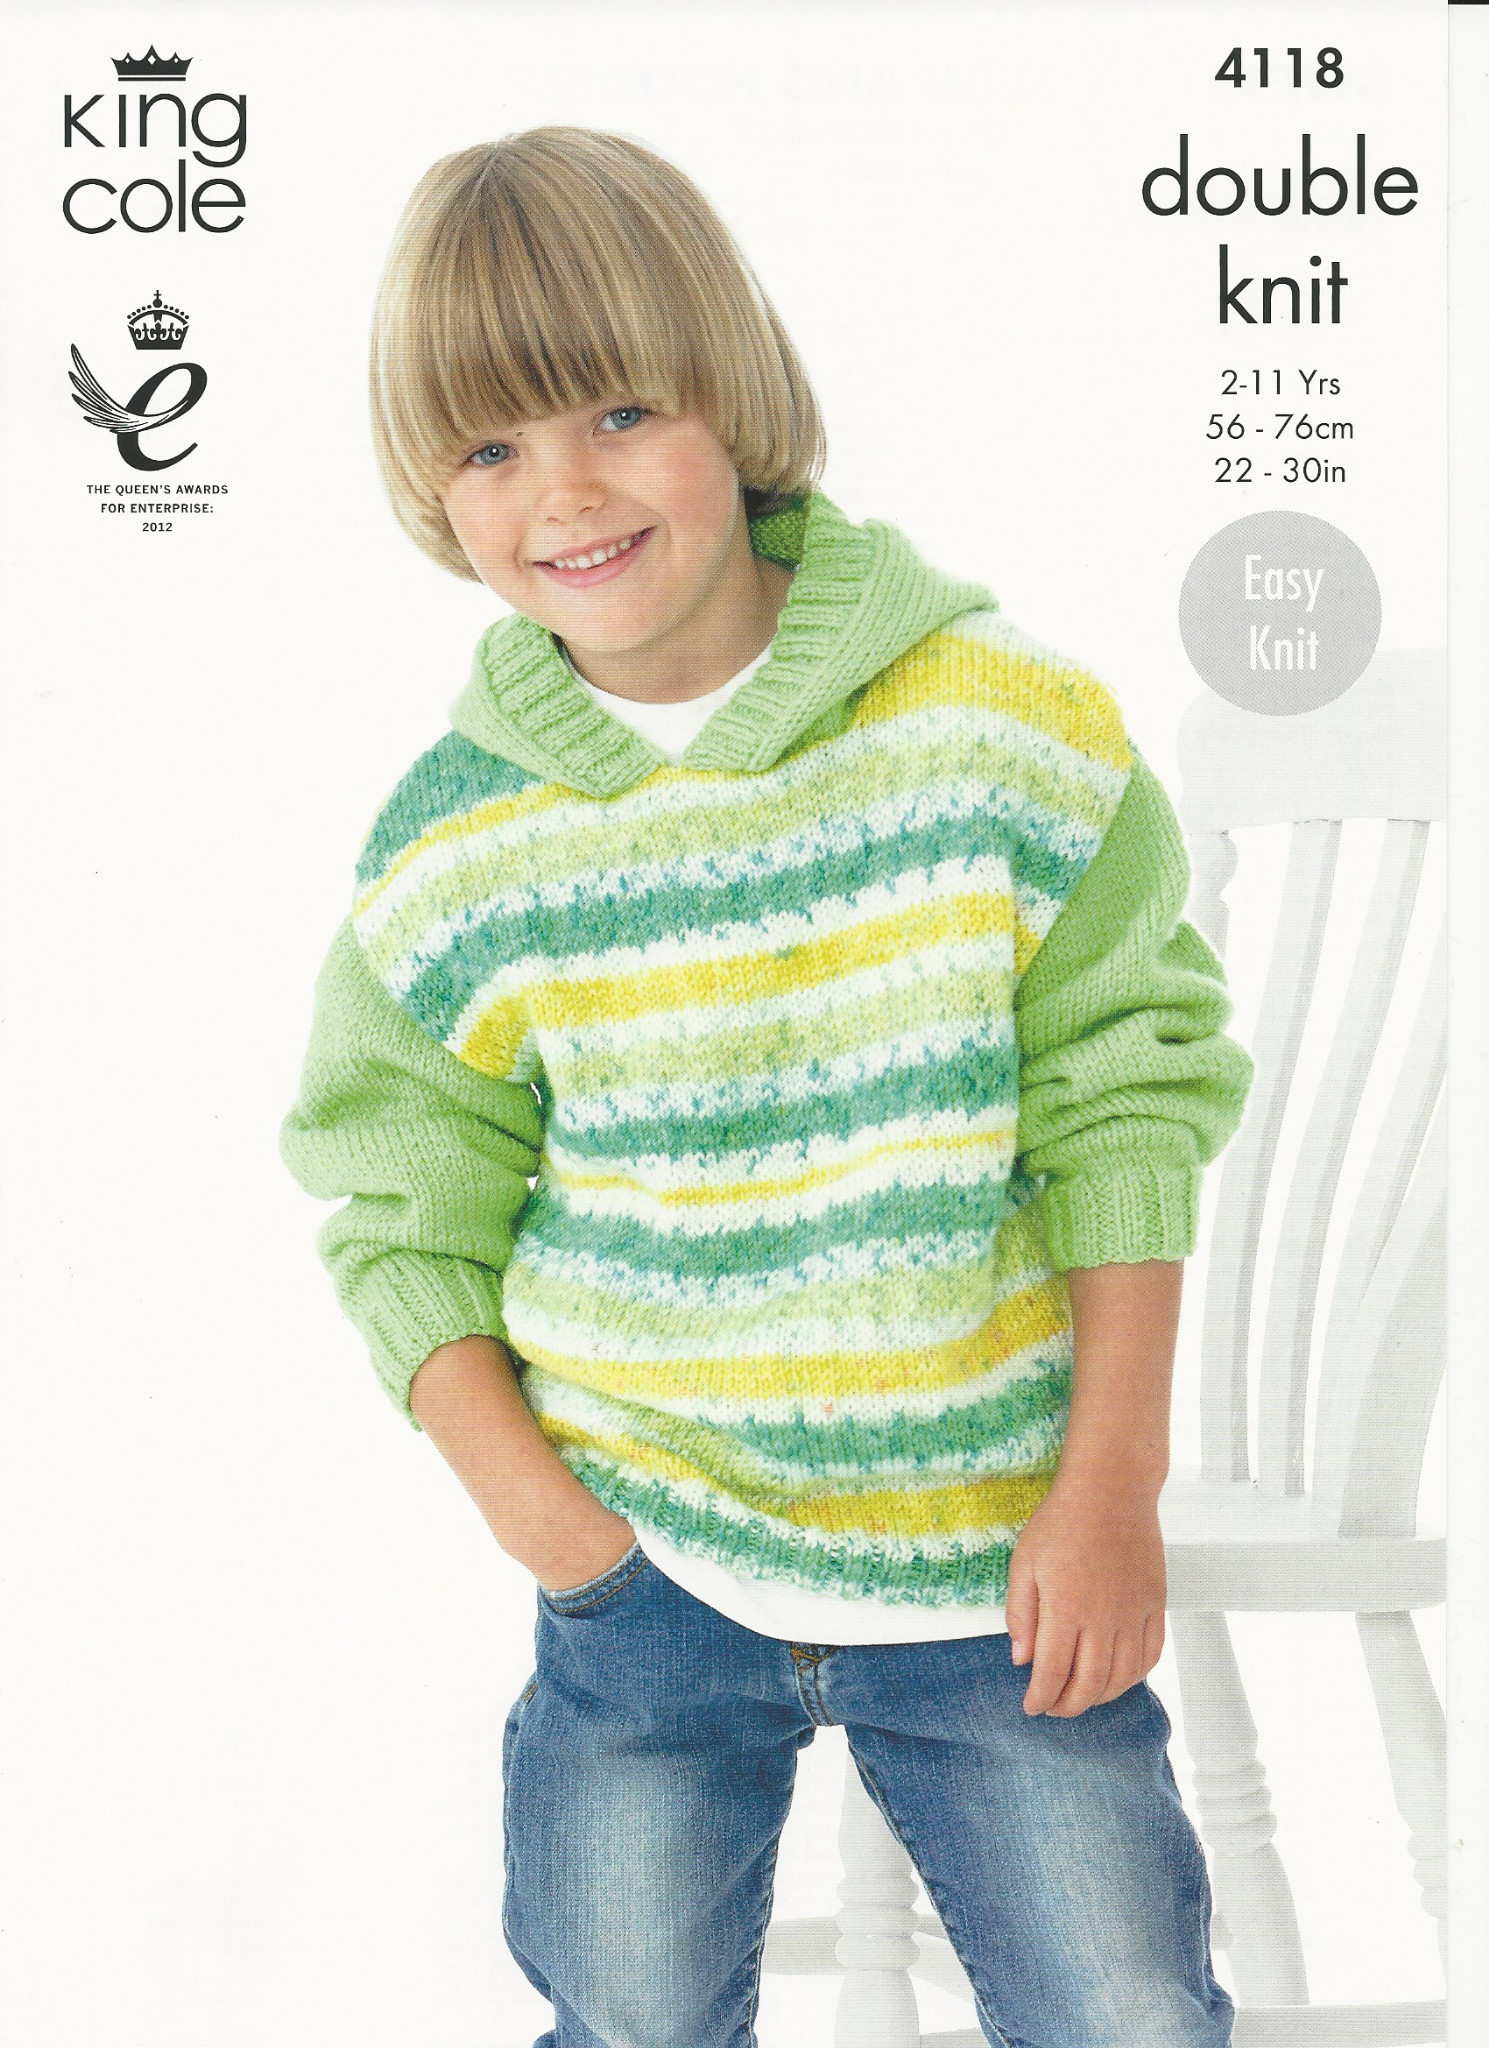 Elegant King Cole Childrens Sweater Dress Hoo Knitting Pattern Knitting Patterns for Childrens Sweaters Of Charming 47 Models Knitting Patterns for Childrens Sweaters